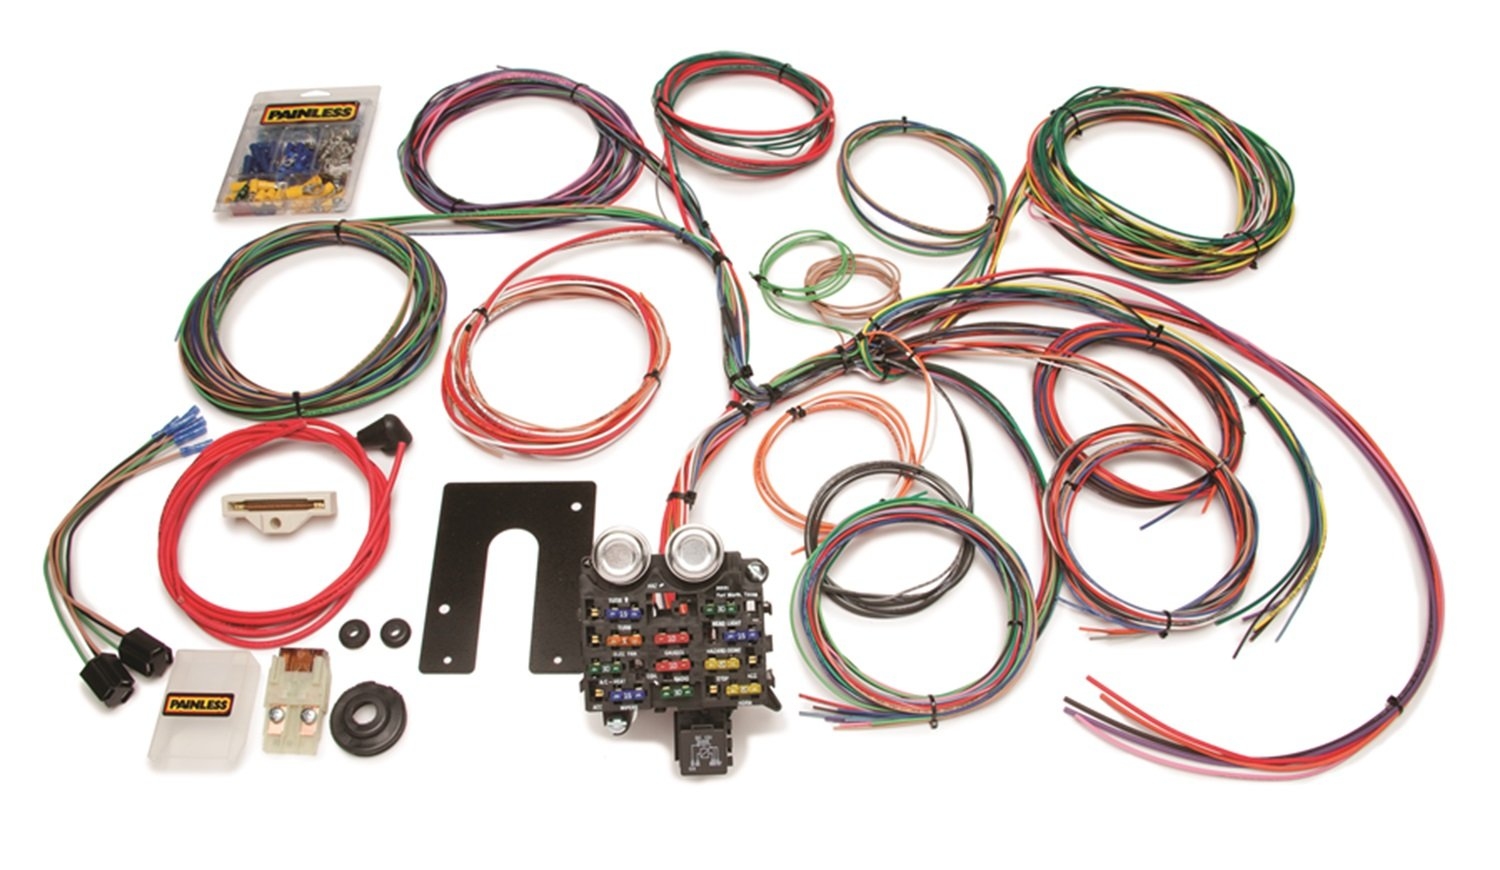 71y4s8BuPyL._SL1500_ amazon com painless wire 10105 wiring harness with firewall cj wiring harness at edmiracle.co